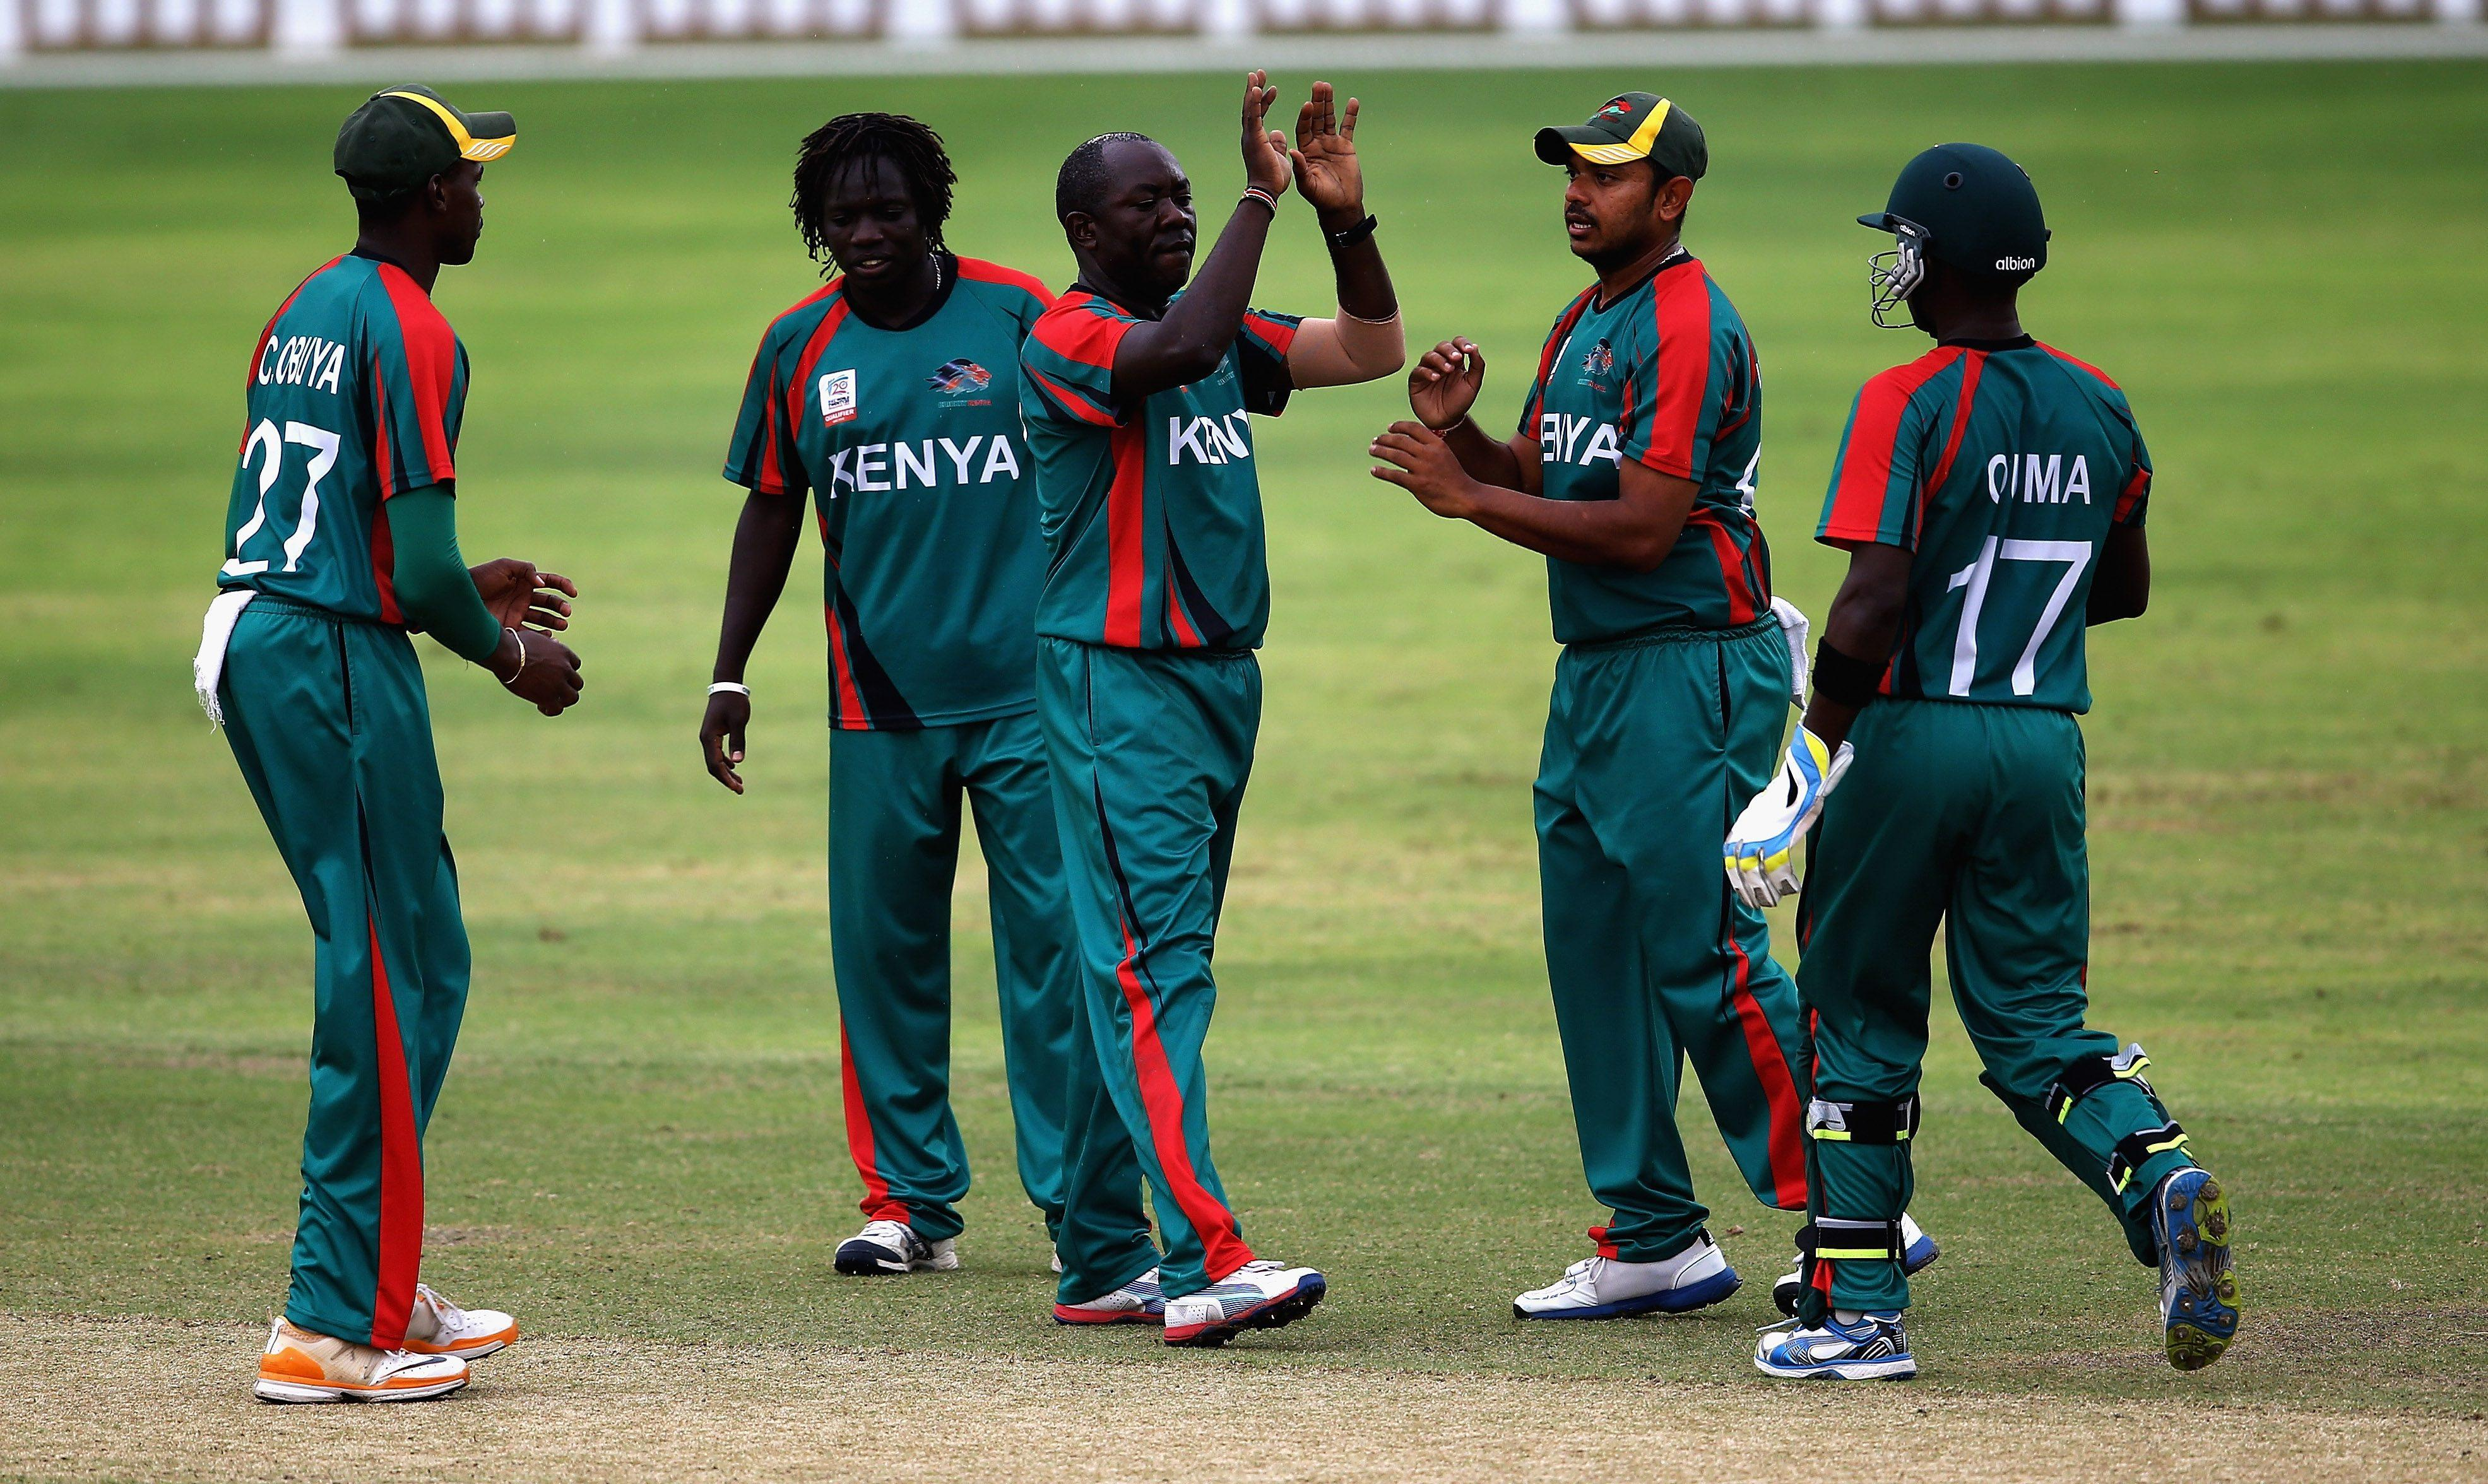 All 10 squads for ICC CWCQ New Zealand 2014 confirmed